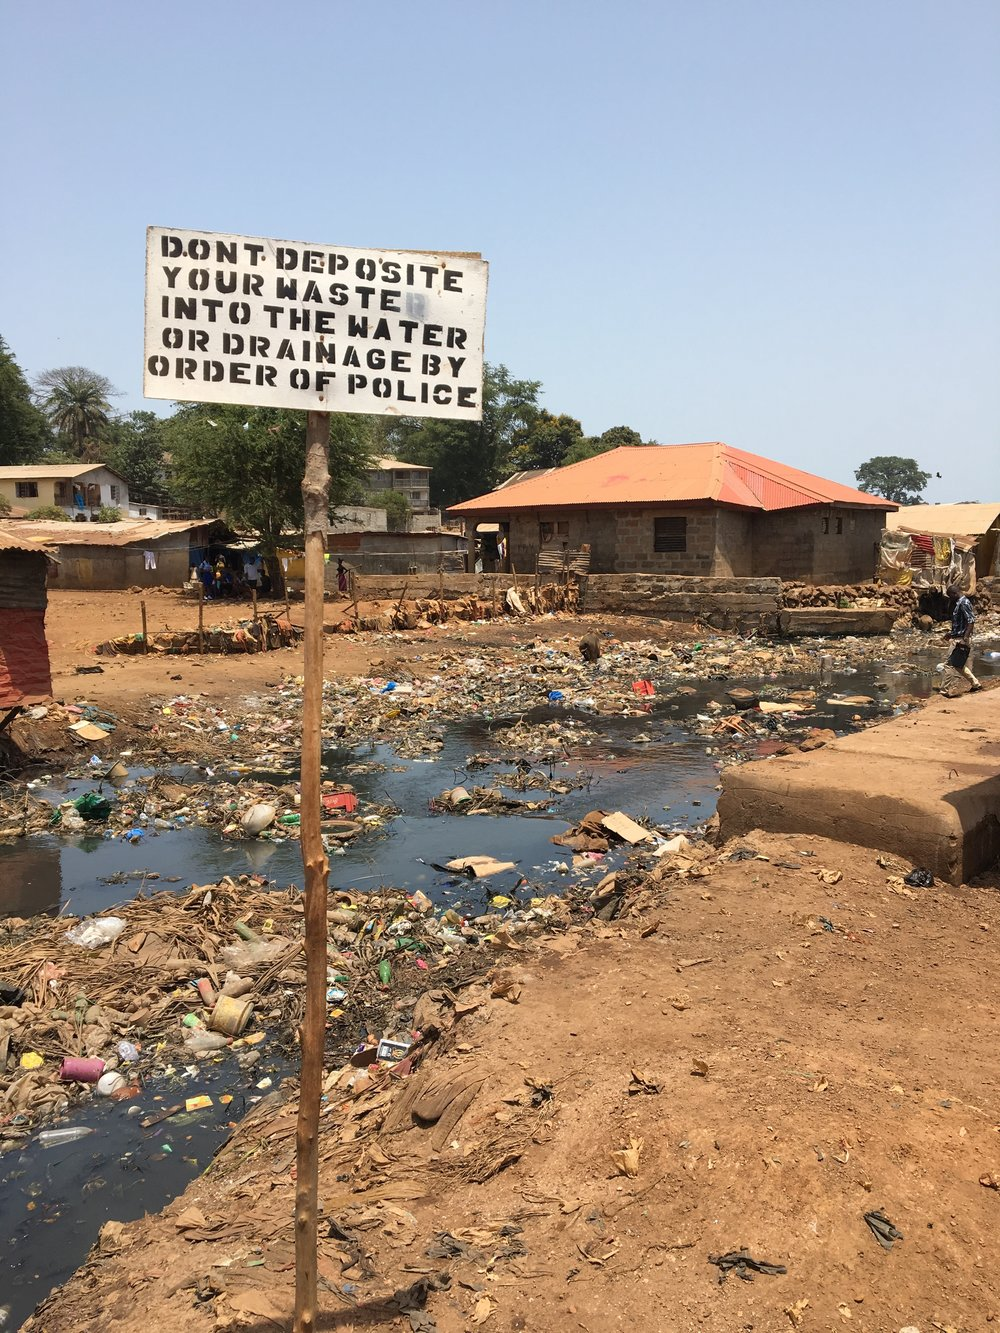 During the rainy season, the rivers of Kissi are flooded. Since the rivers are used for garbage dumping and toilet, flooding increases the risk of diseases such as cholera.